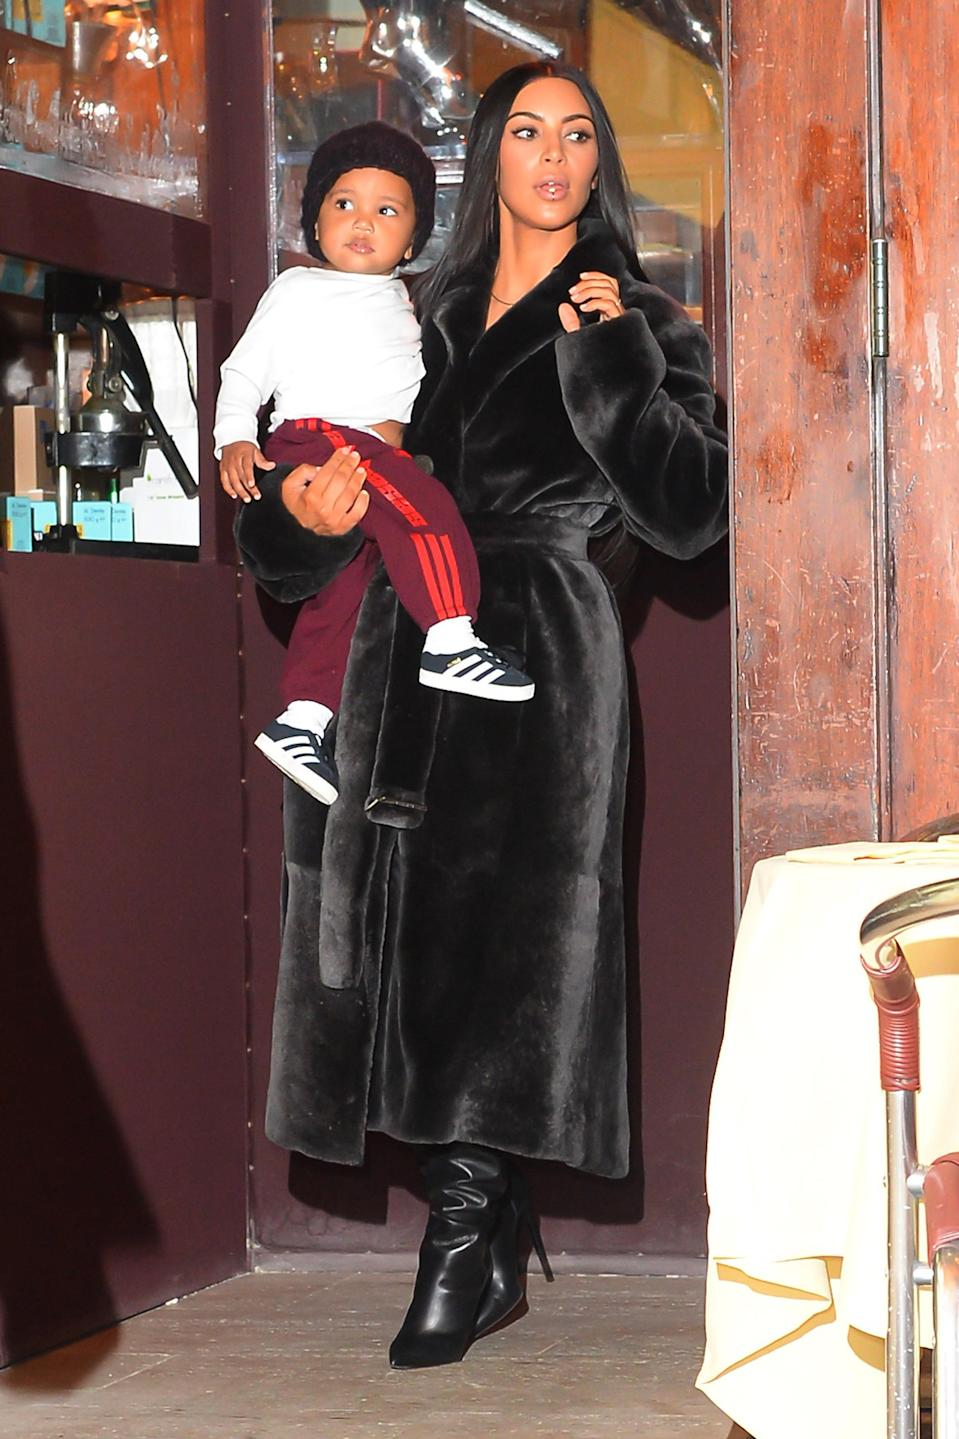 <p>Although Kimye have never actually explained the meaning behind their son's name, fans have speculated that it could be because it was a 'blessing' to have a healthy baby at the end of Kim's tricky second pregnancy; she suffered from pre-eclampsia.<br>Another theory is that the moniker pays tribute to Kim's late father who she considered to be a 'Saint.'<br><em>[Photo: Getty]</em> </p>